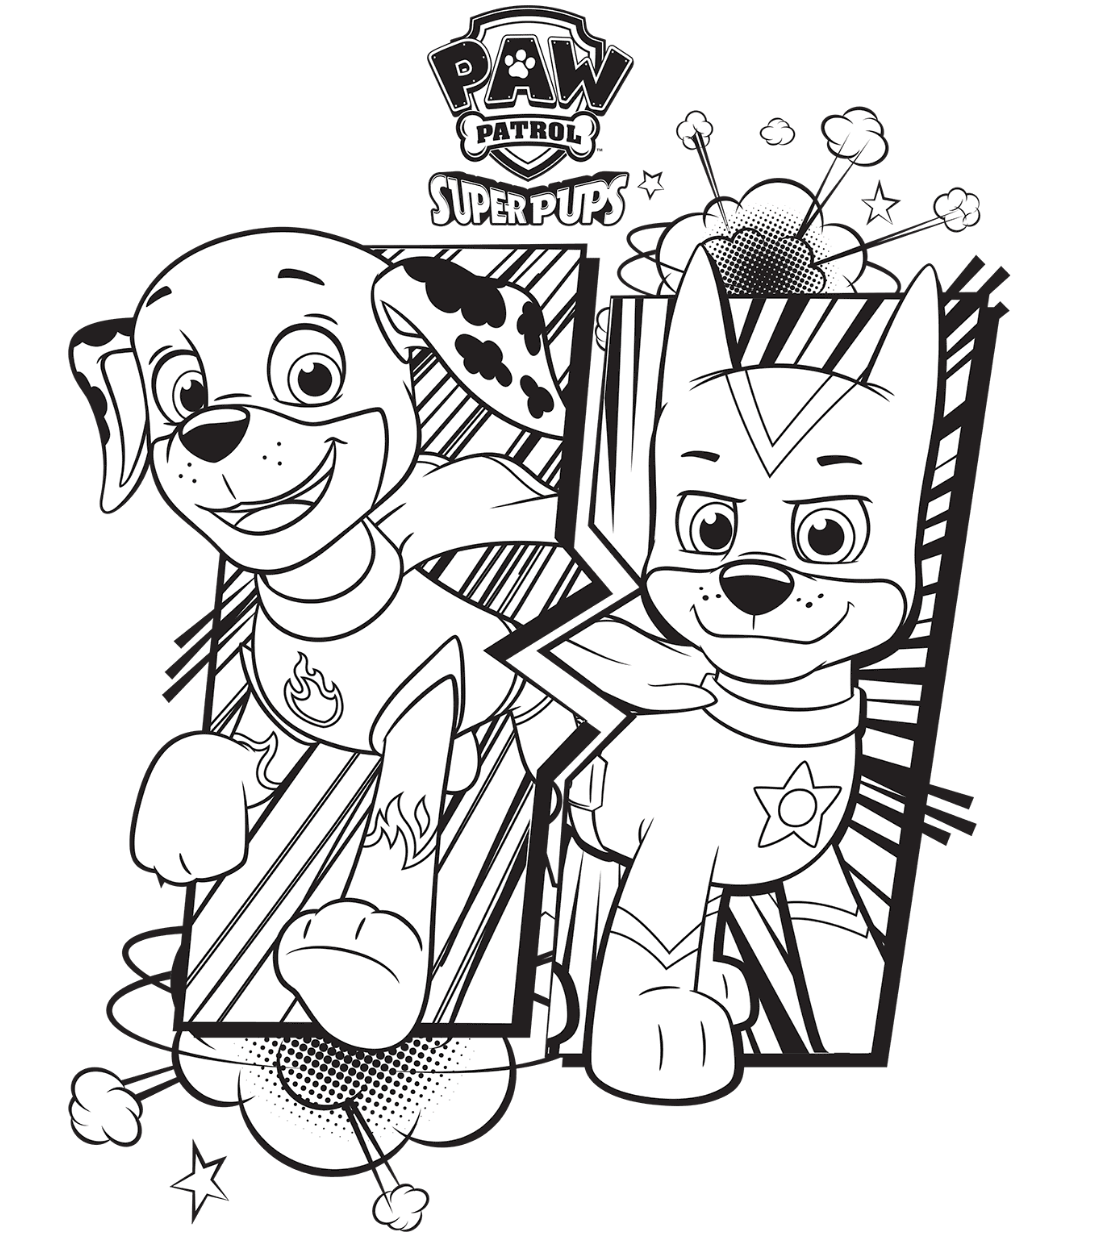 PAW Patrol Super Pups Chase And Marshall Colouring Page